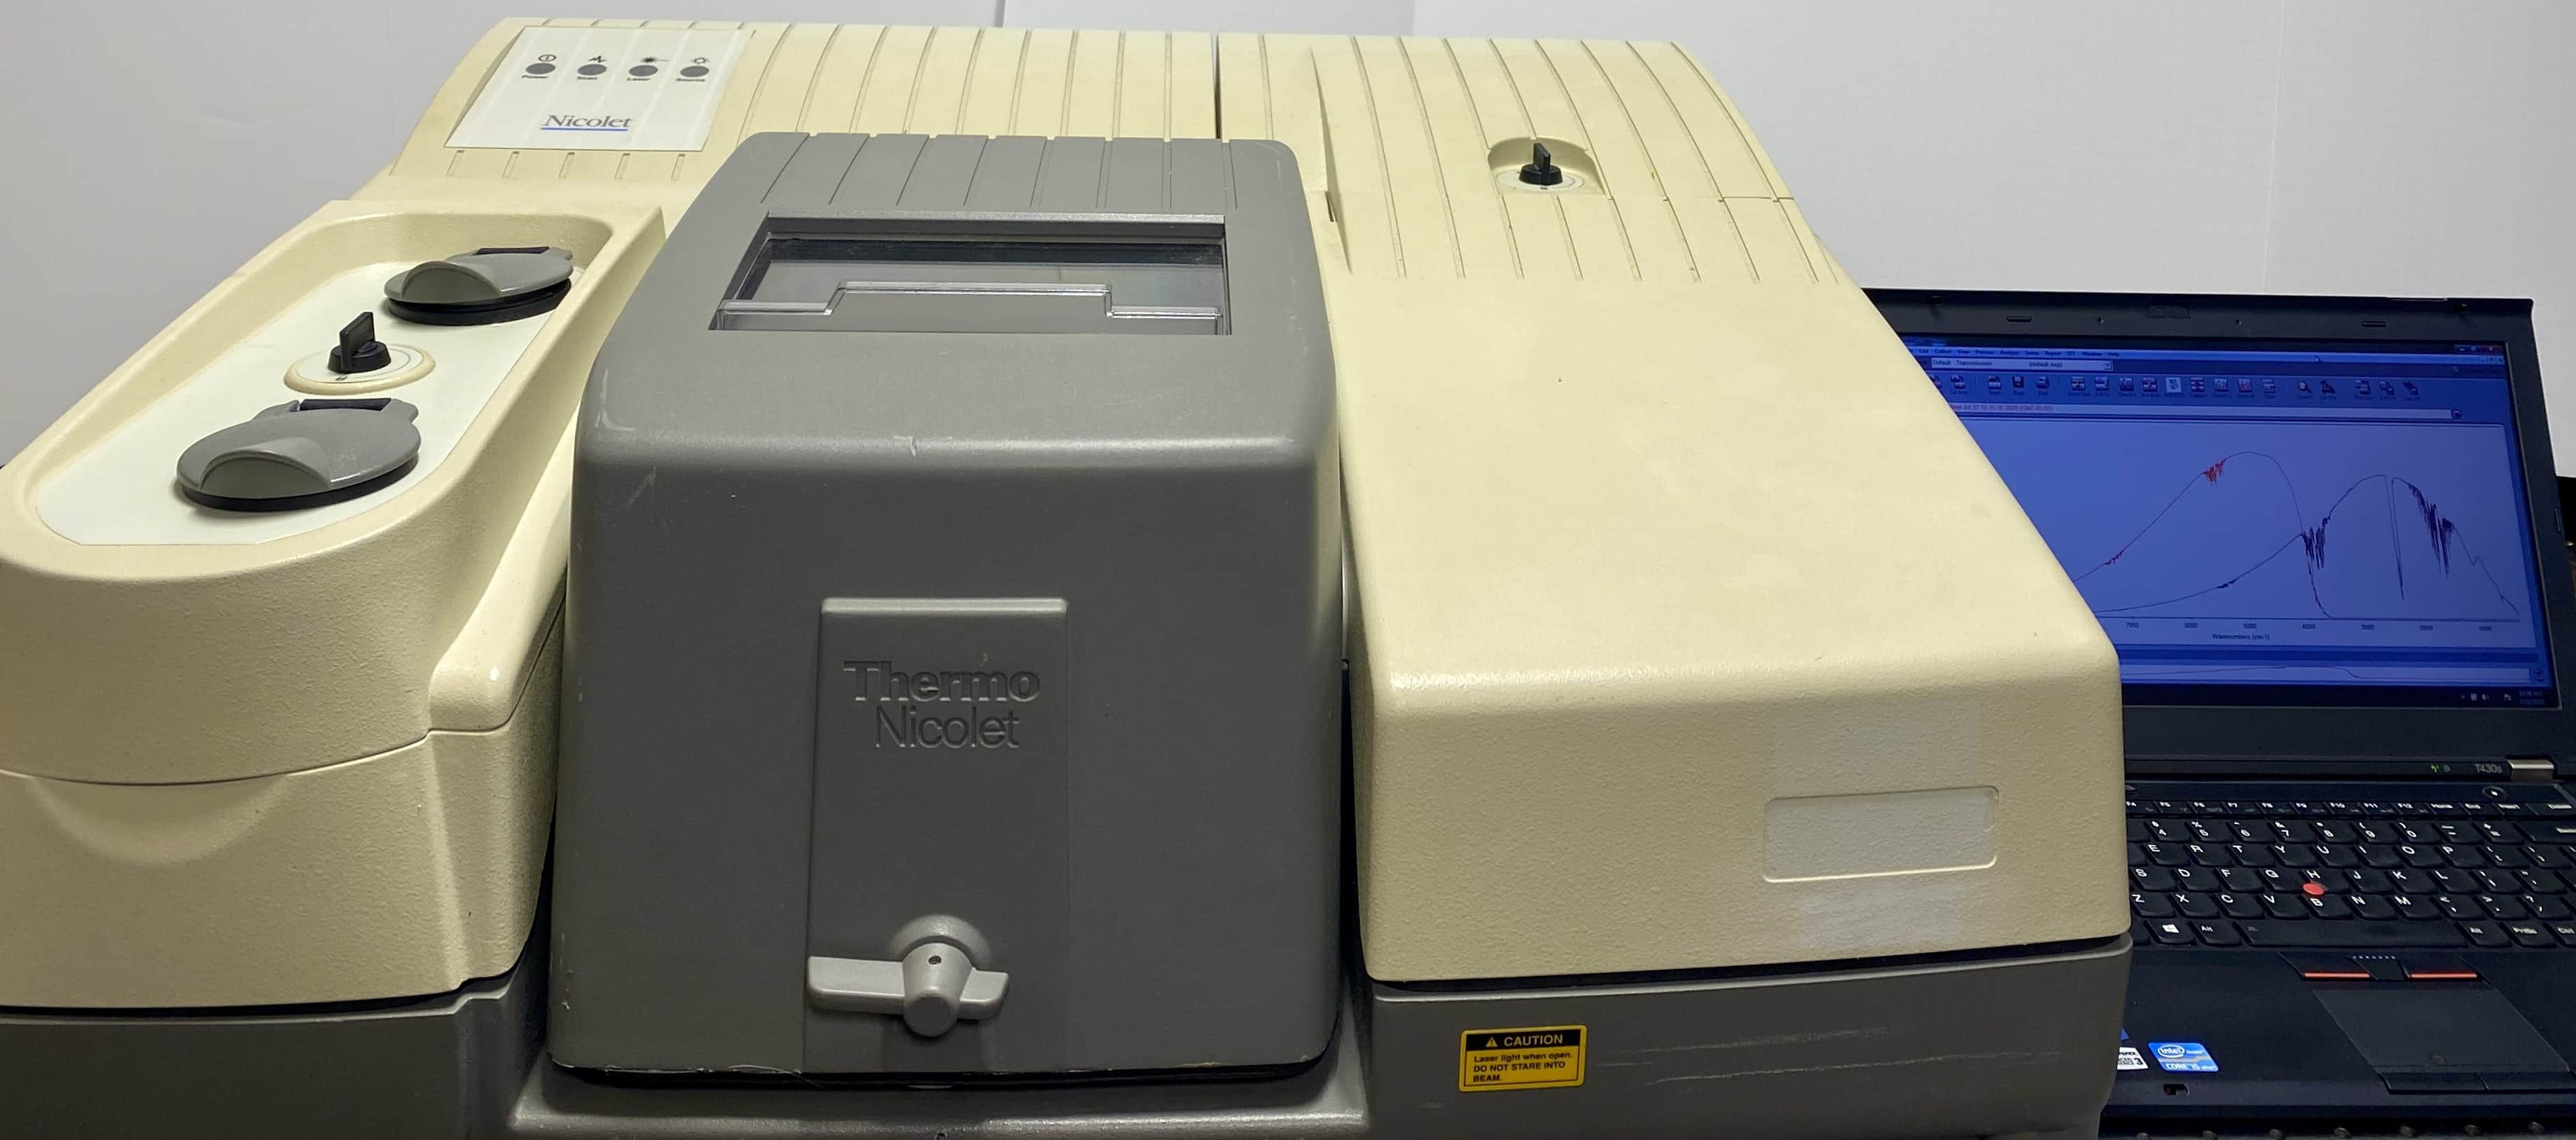 Thermo Nicolet 6700 FTIR with Near Infrared Option